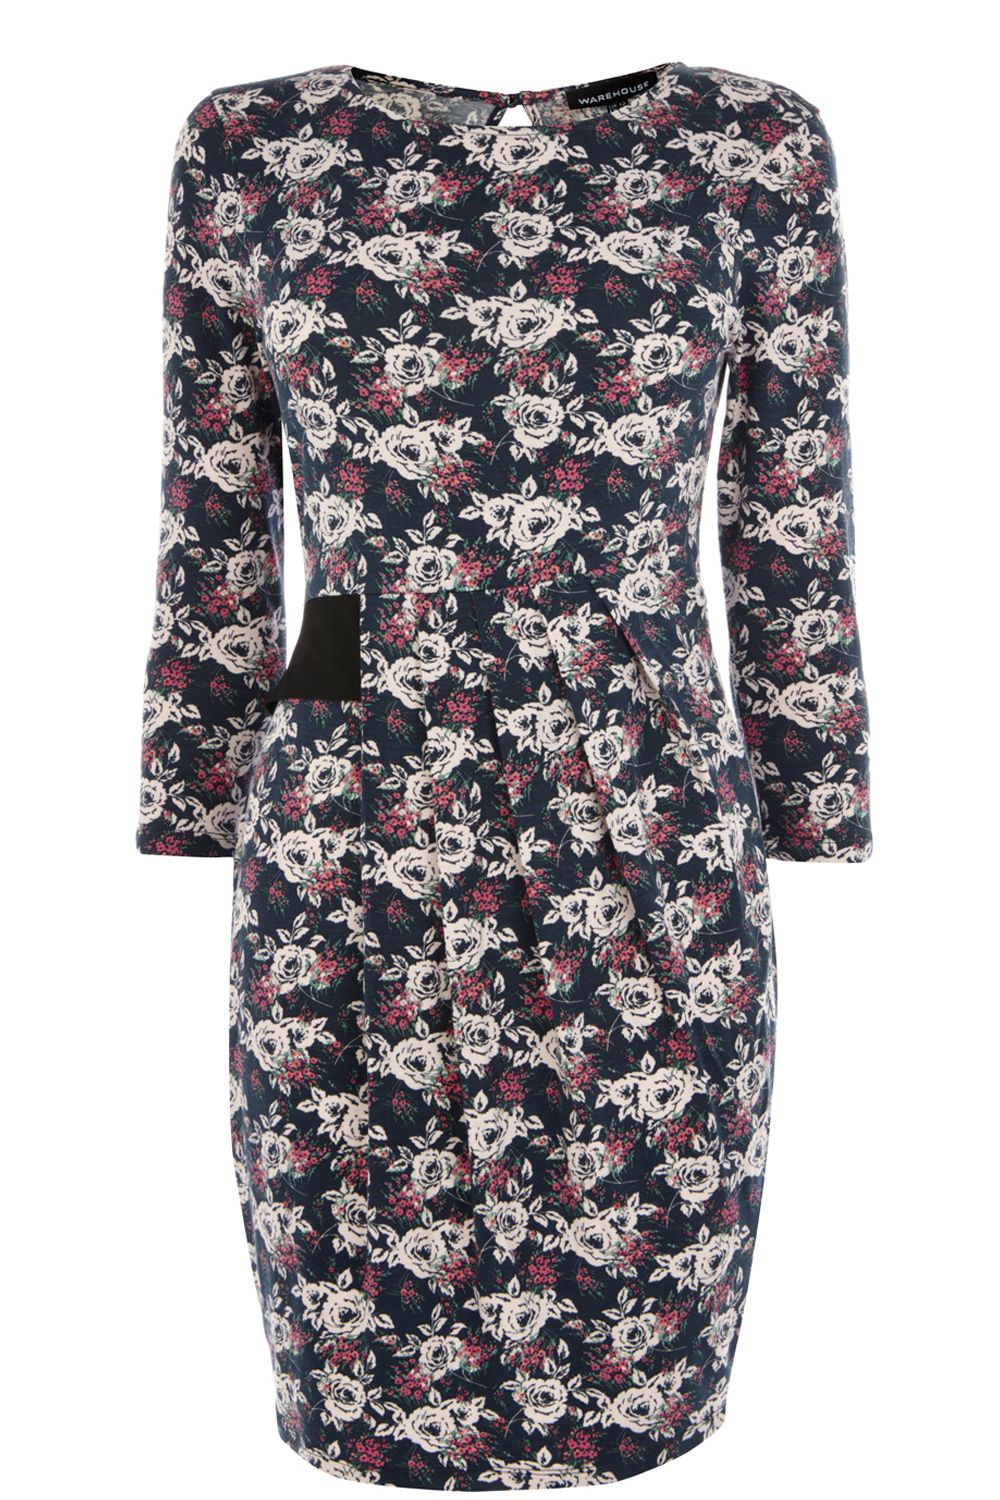 Rose floral day dress